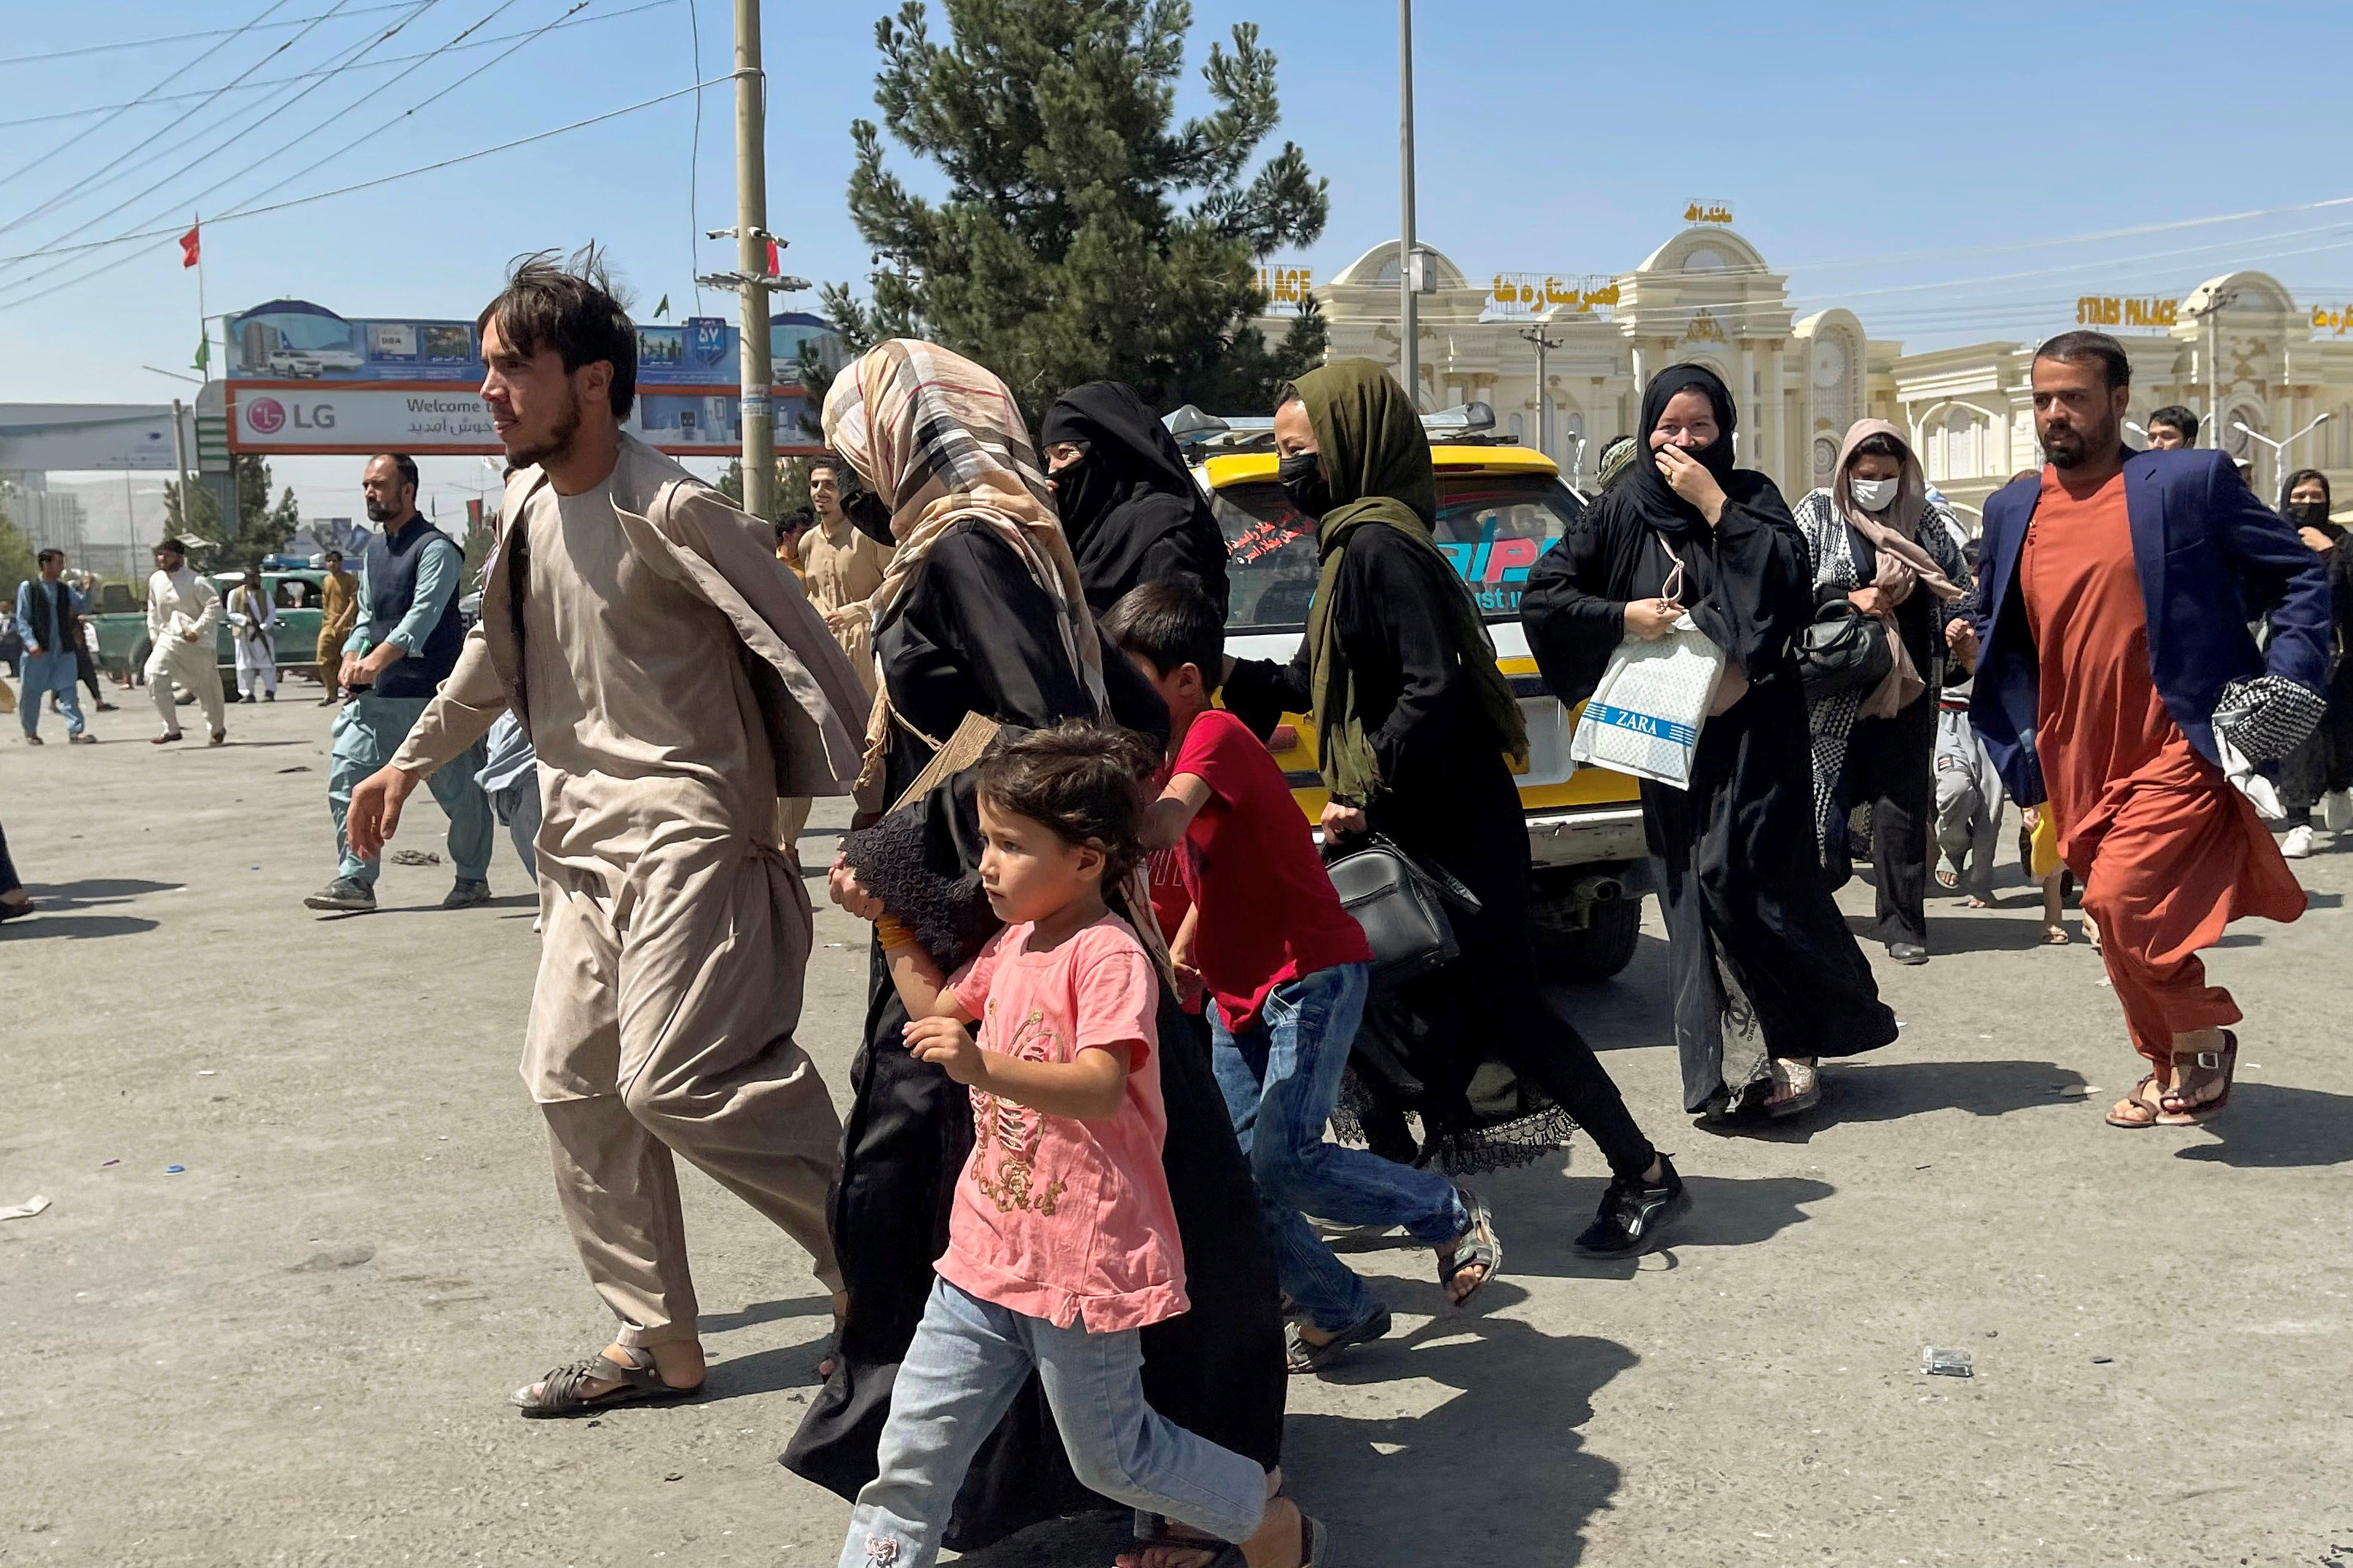 People try to enter Hamid Karzai International Airport in Kabul, Afghanistan, on August 16, 2021. REUTERS / Stringer